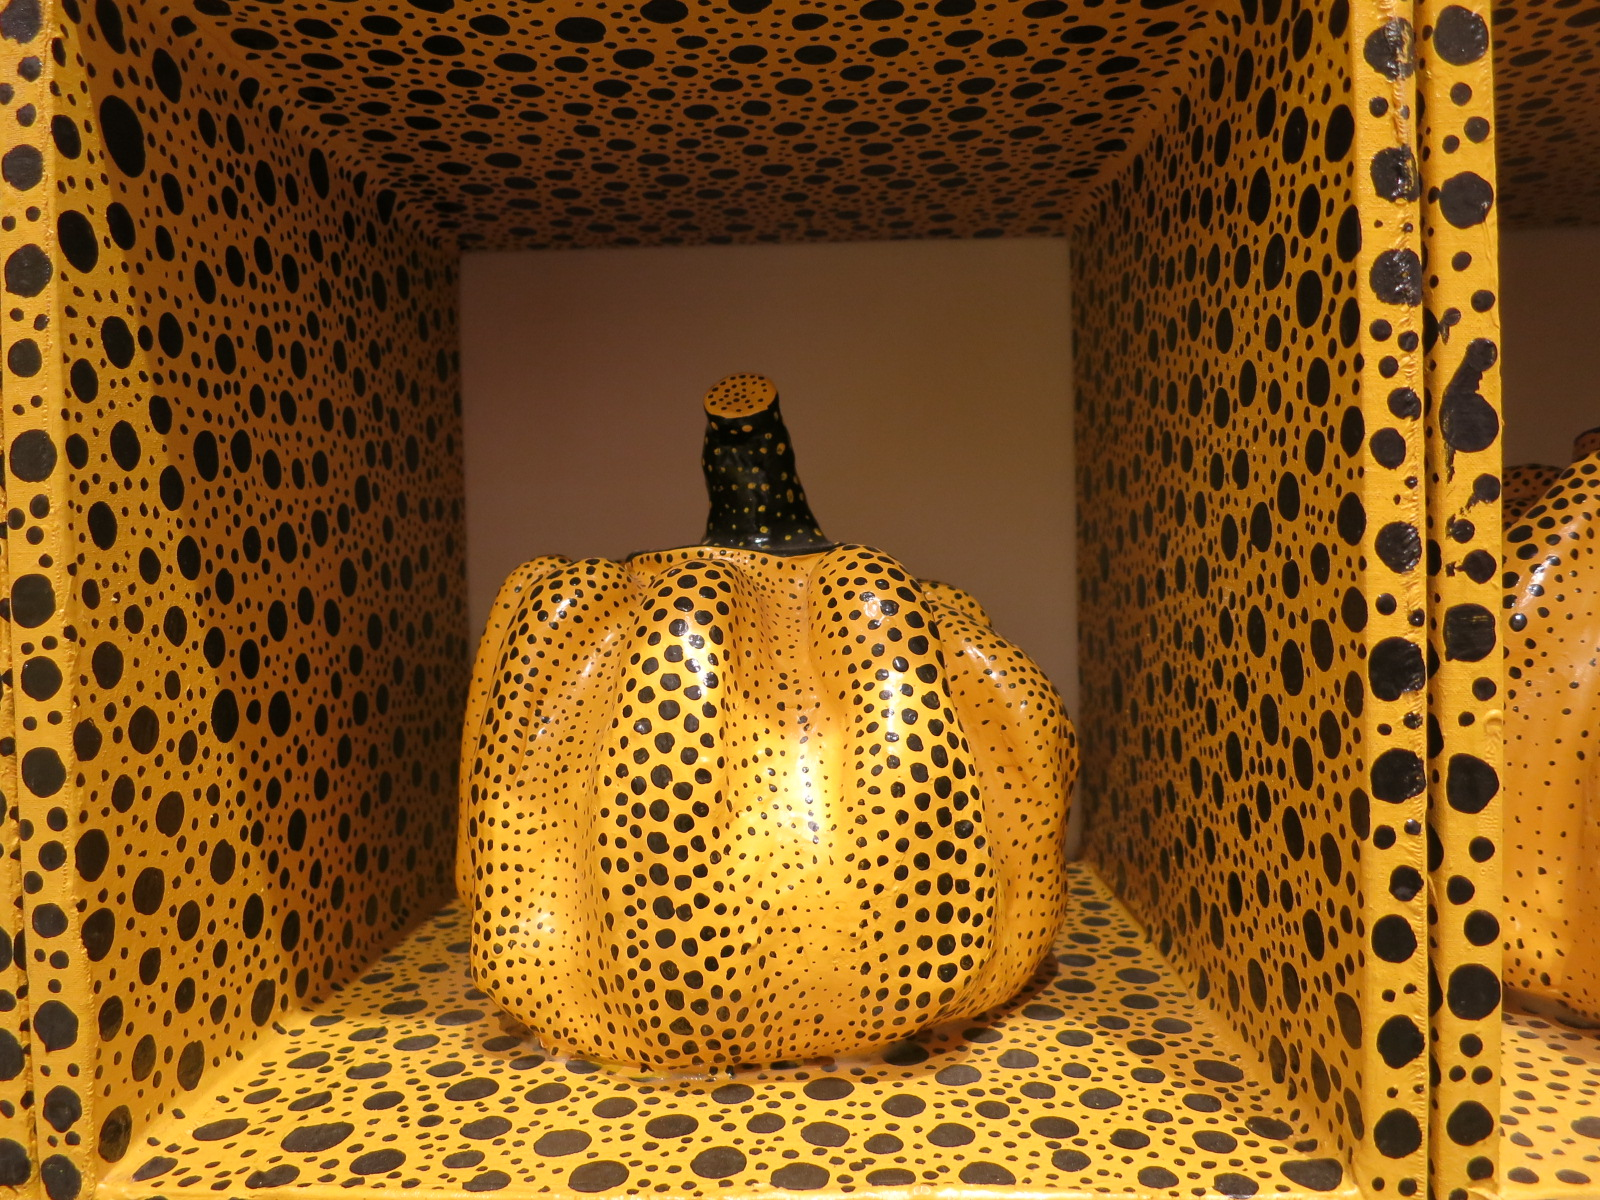 Yayoi Kusama's 1980s works in the In Infinity Retrospective at the Louisiana Museum of Modern Art, Denmark 2015. A detail of 'Pumpkin Night' 1985